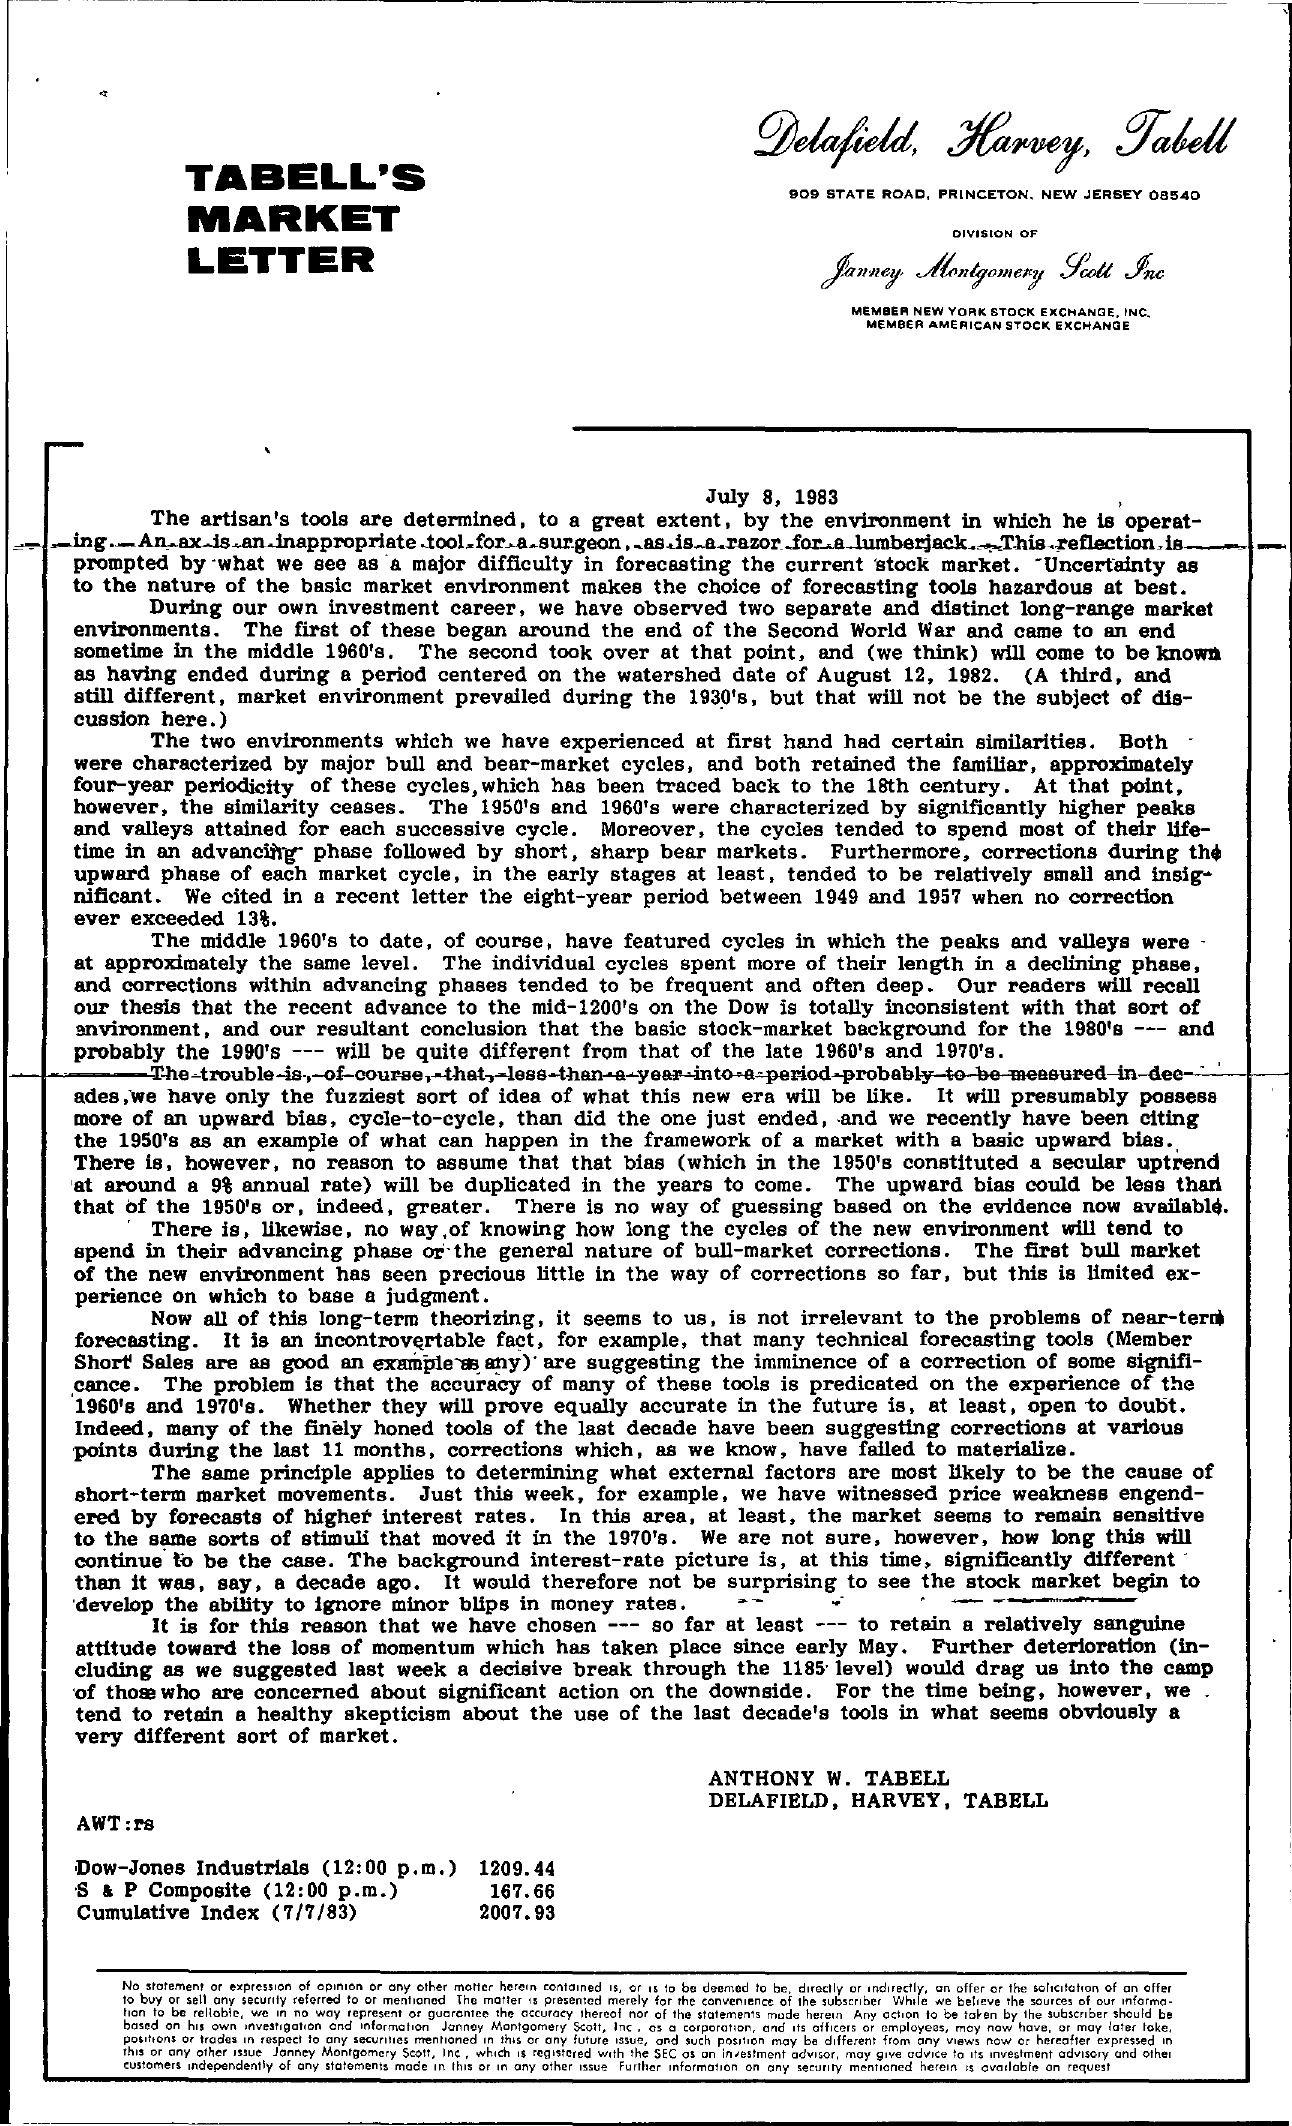 Tabell's Market Letter - July 08, 1983